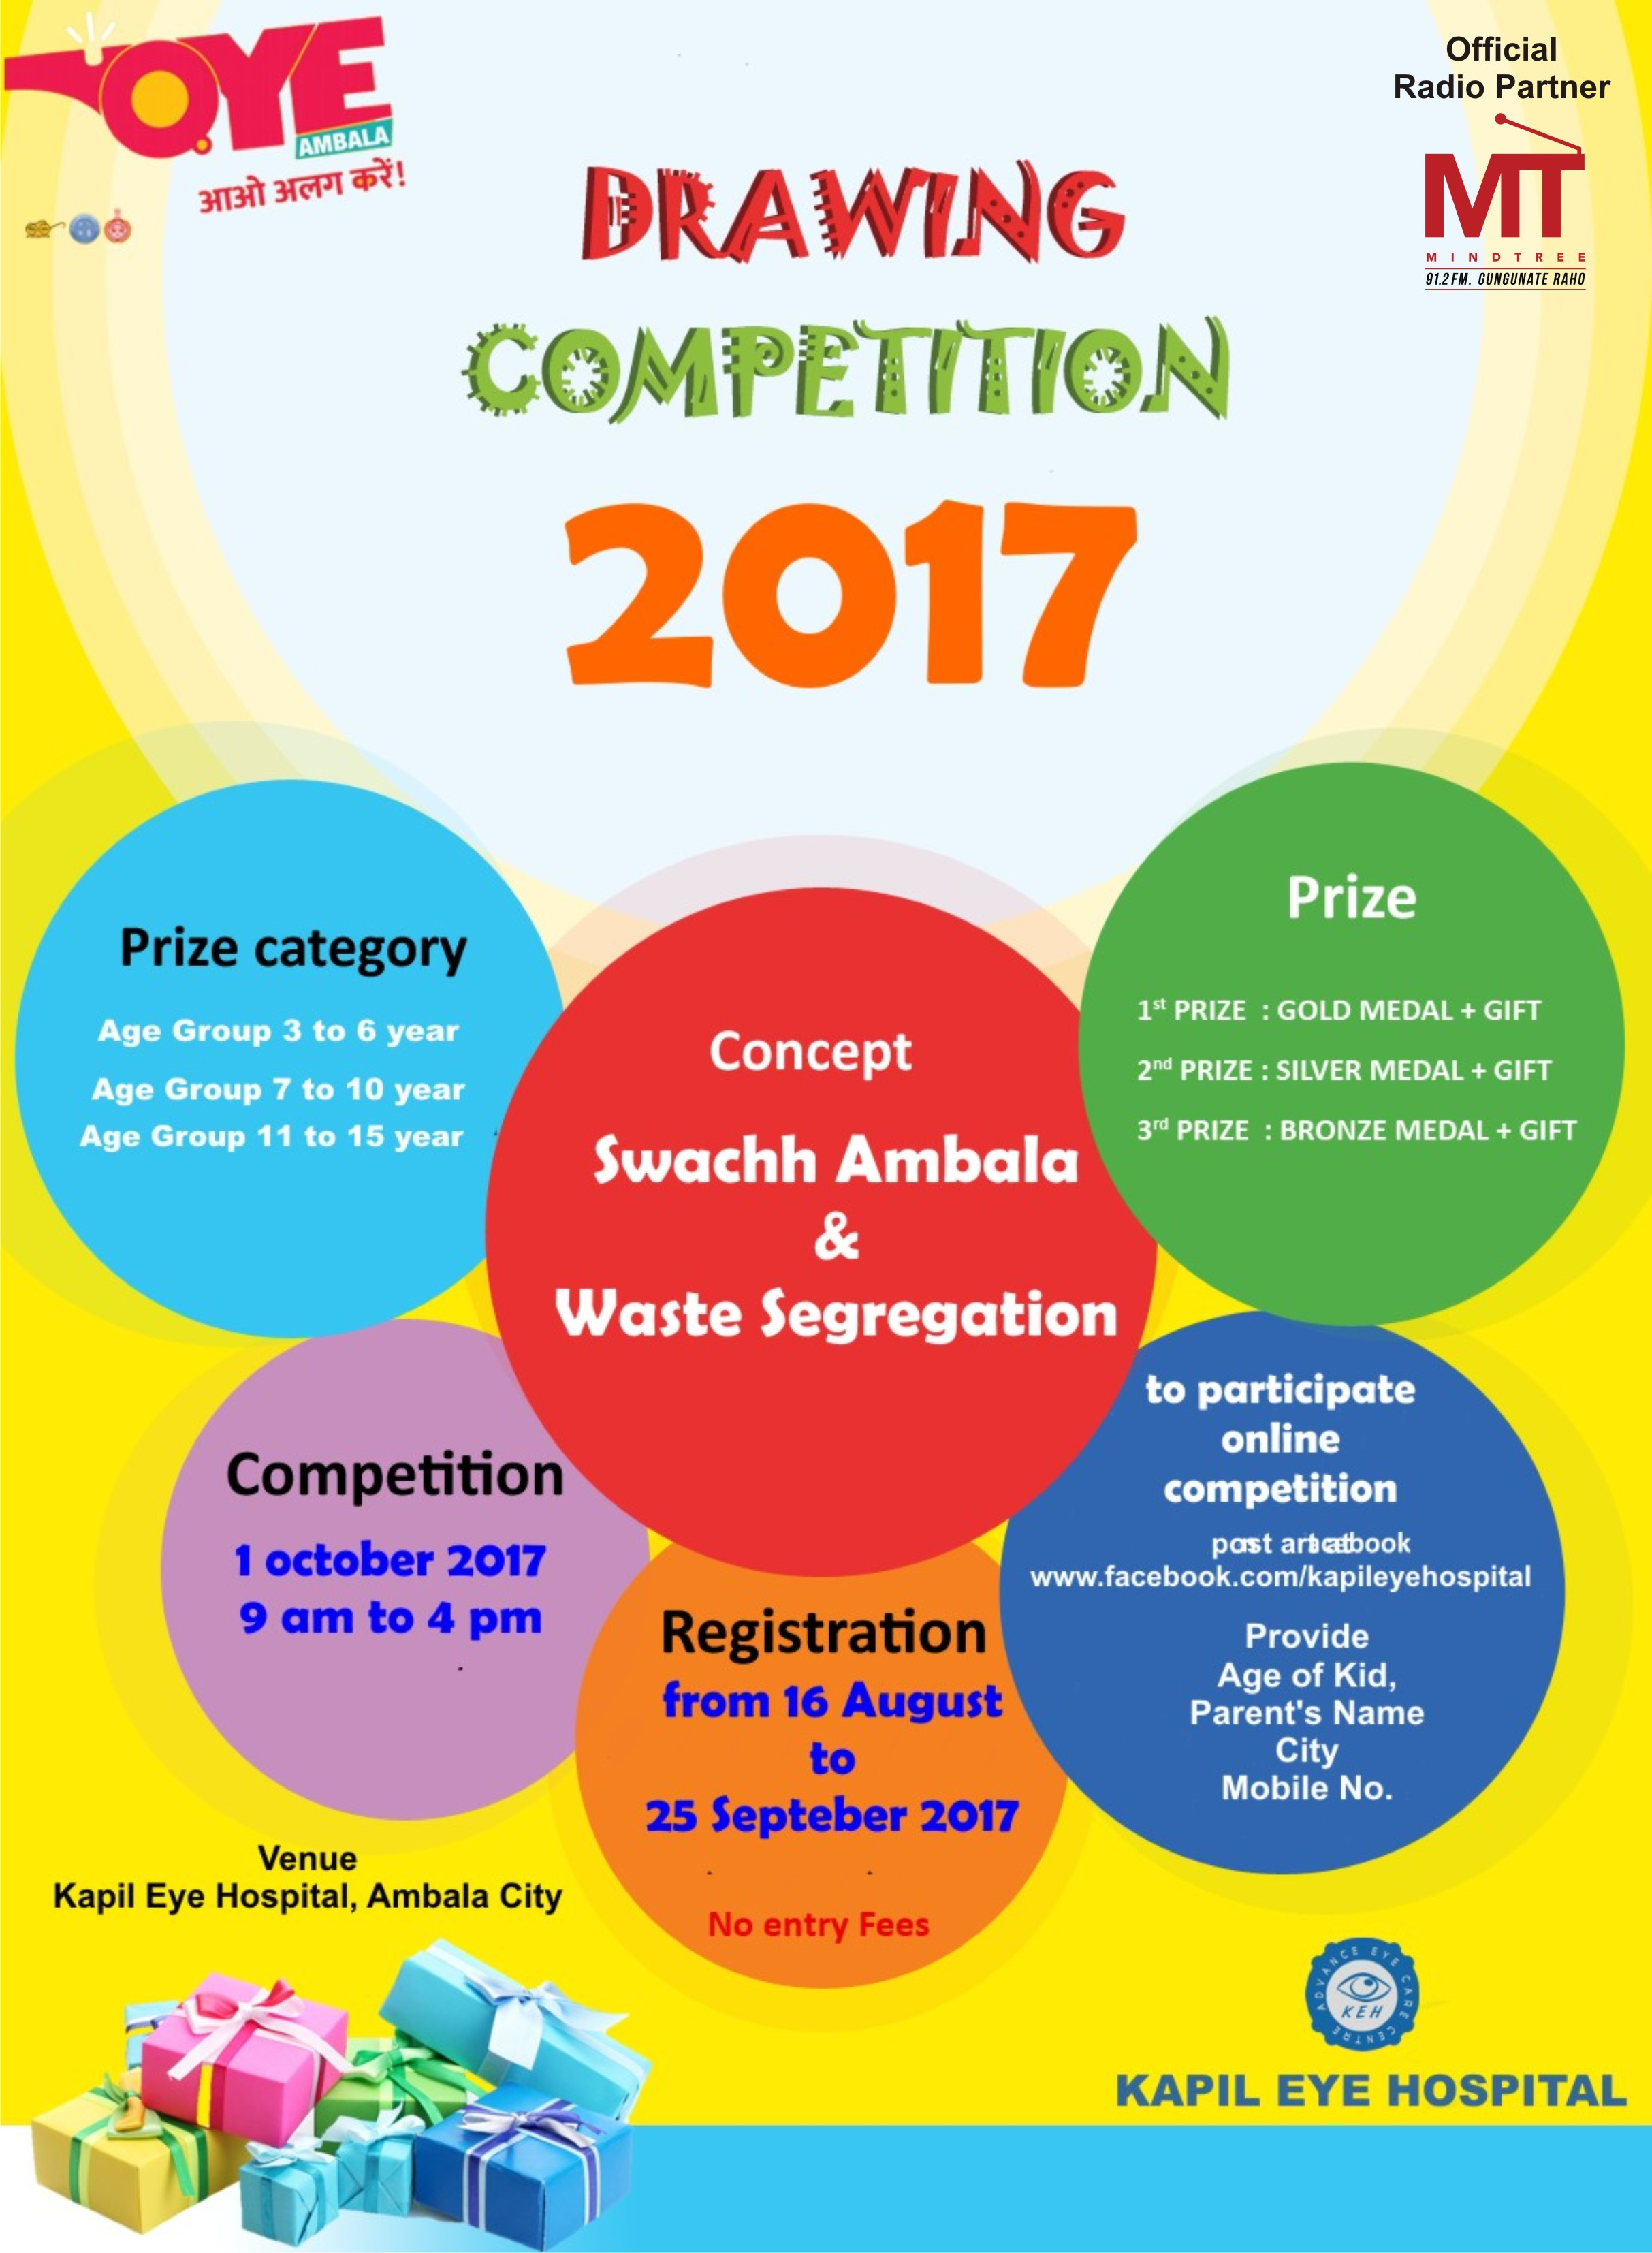 DRAWING COMPETITION 2017